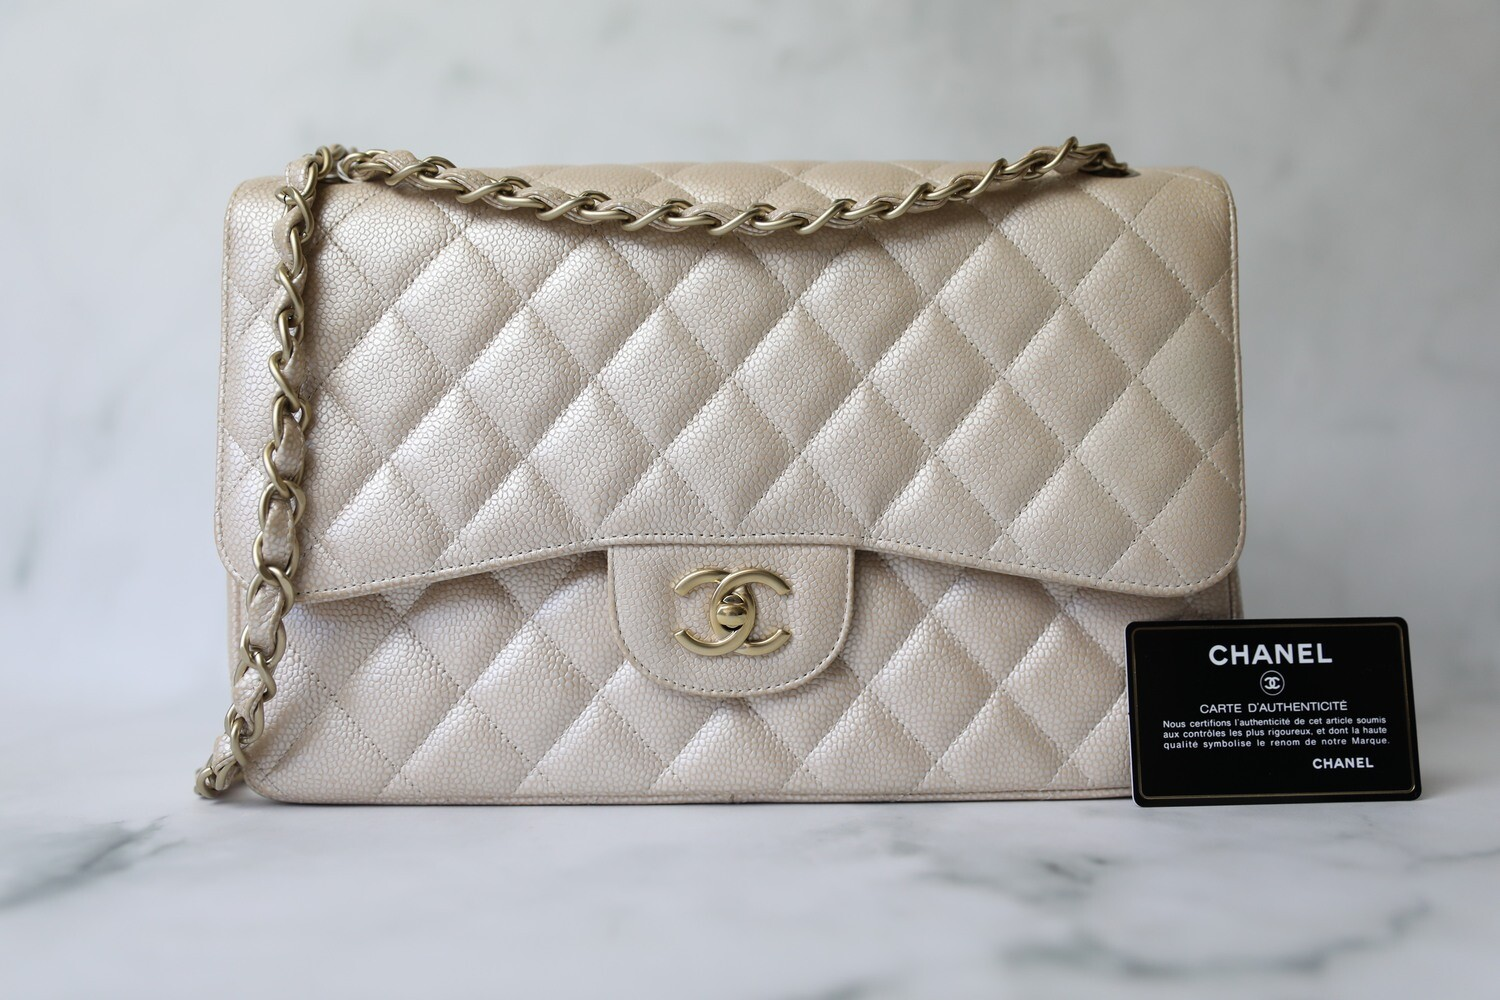 Chanel Classic Jumbo, Pearly Beige Caviar with Gold Hardware, Preowned in Box WA001